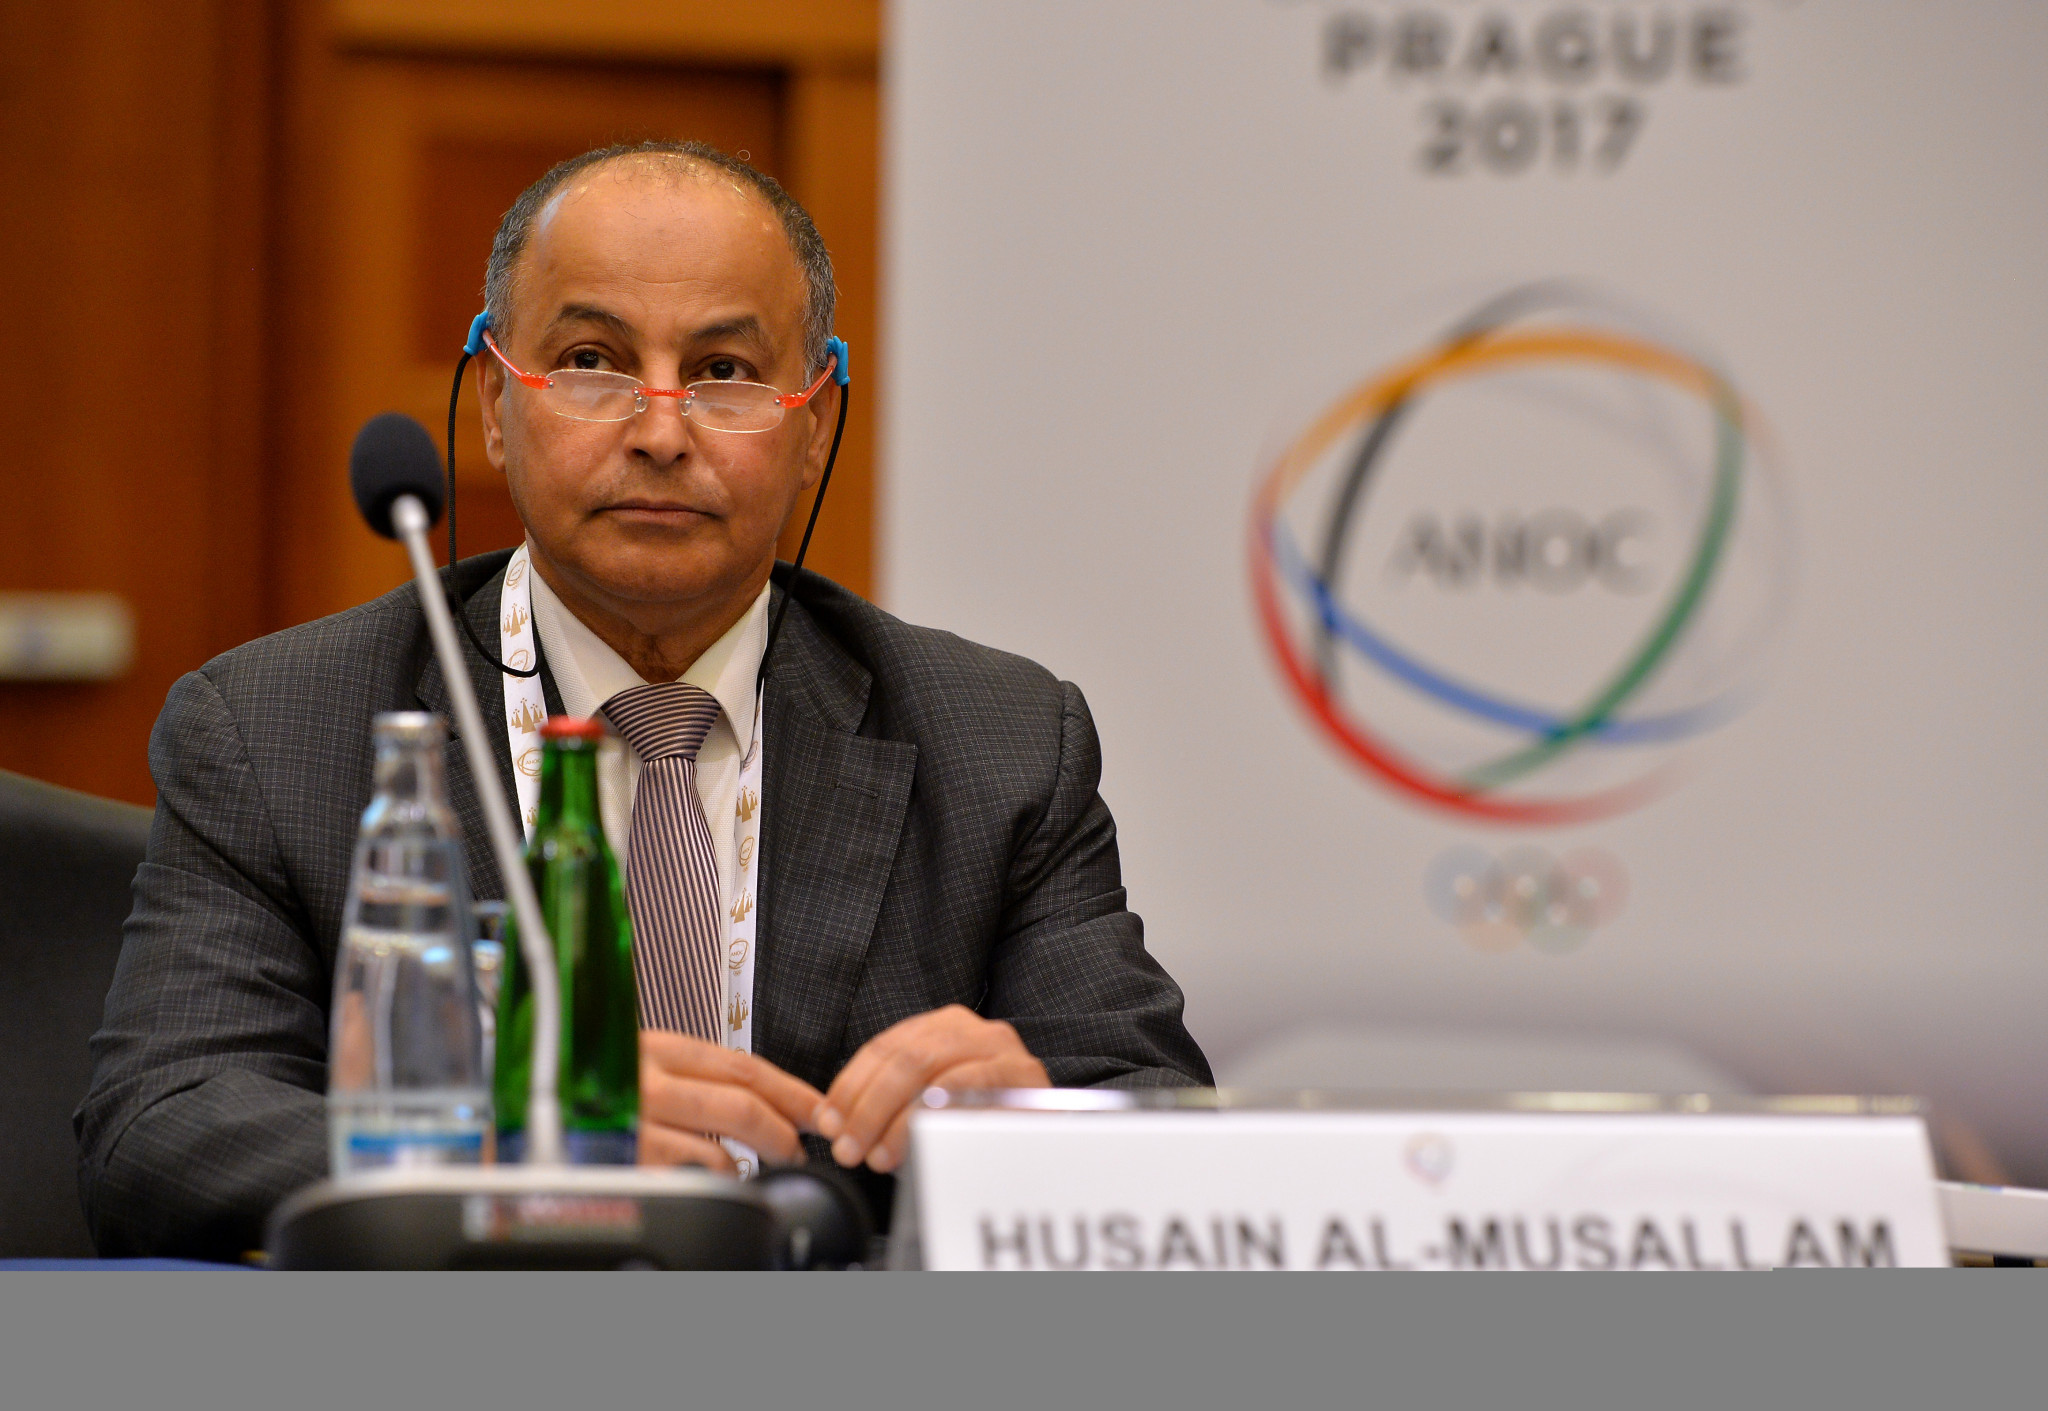 Al-Musallam's bid for FINA Presidency receives glowing support from Ramsamy